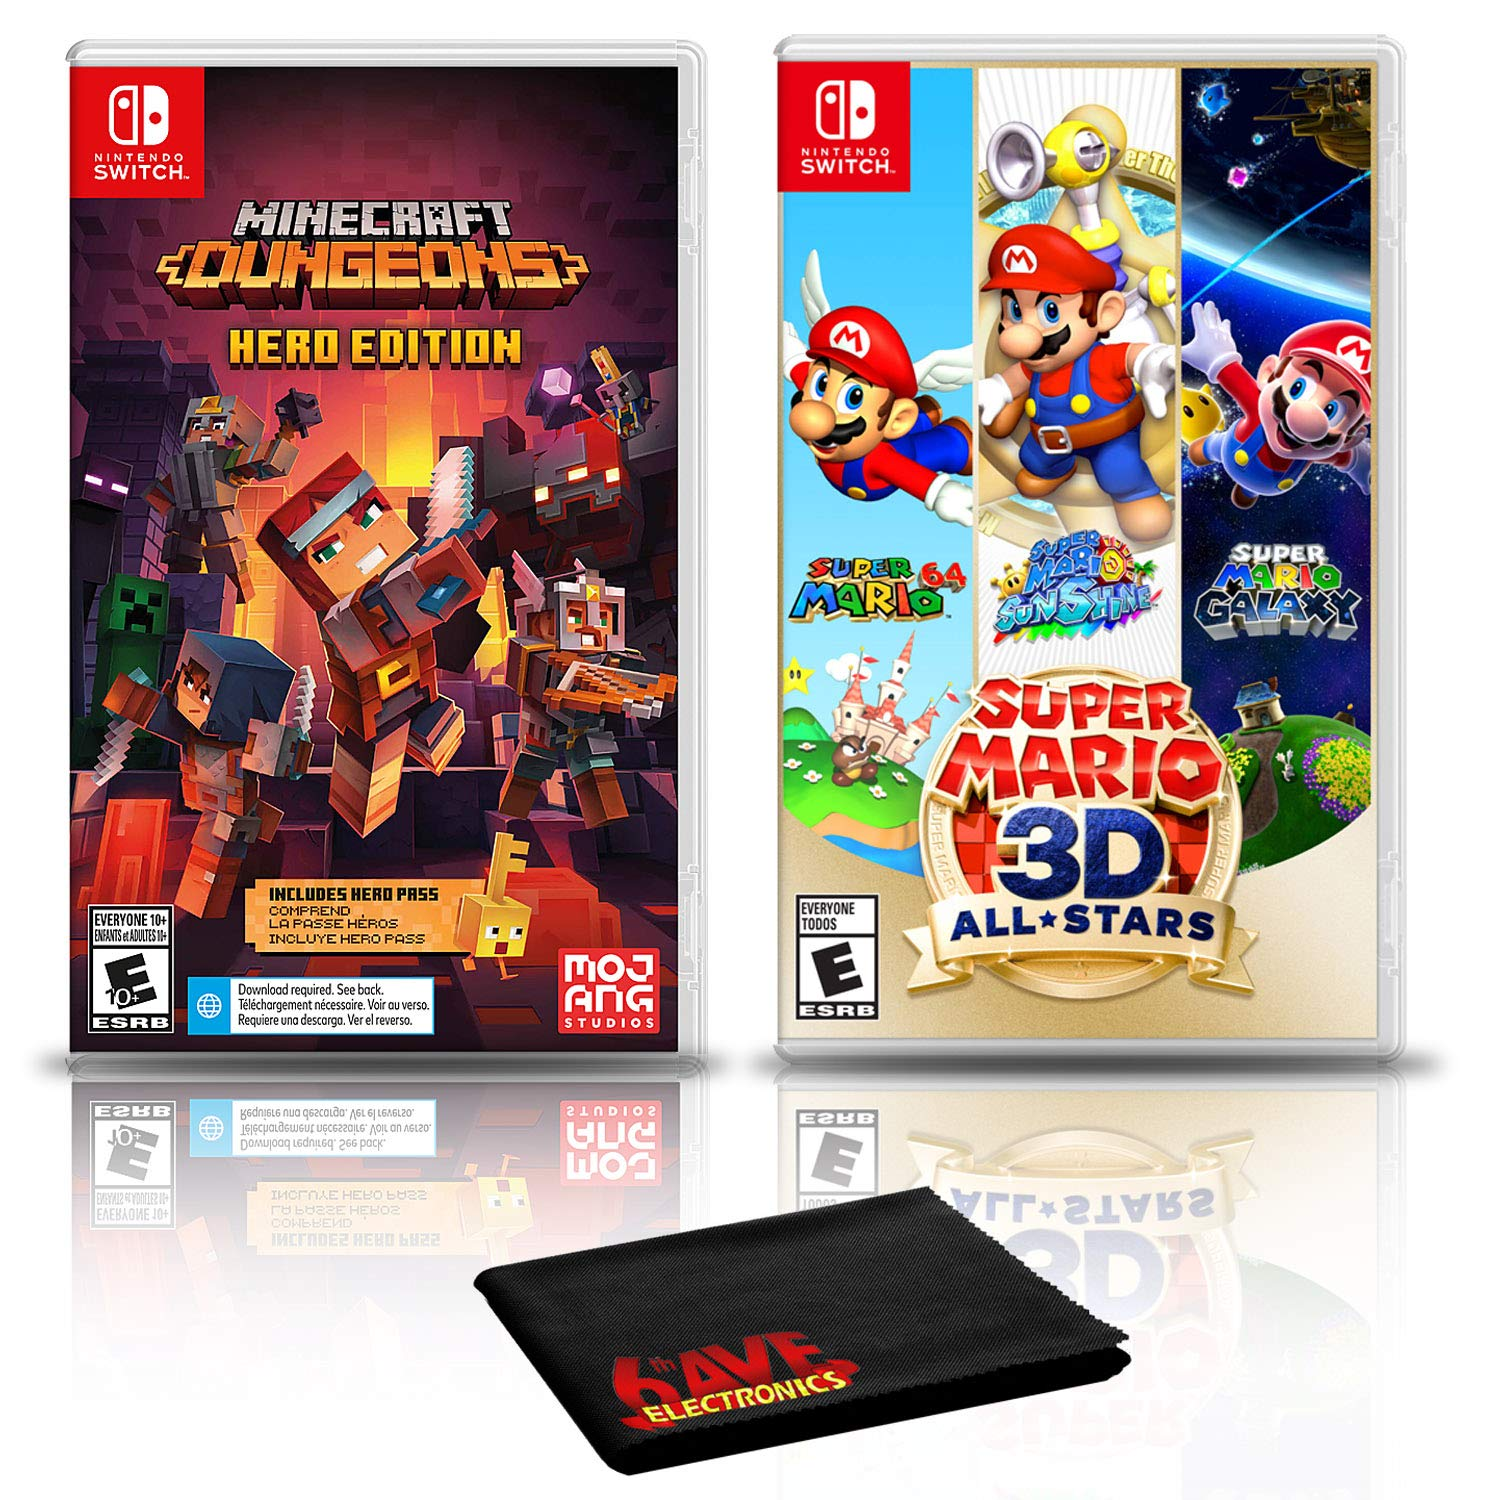 Minecraft Dungeons Hero Edition + Mario 3D All-Stars - Two Game Bundle - Nintendo Switch